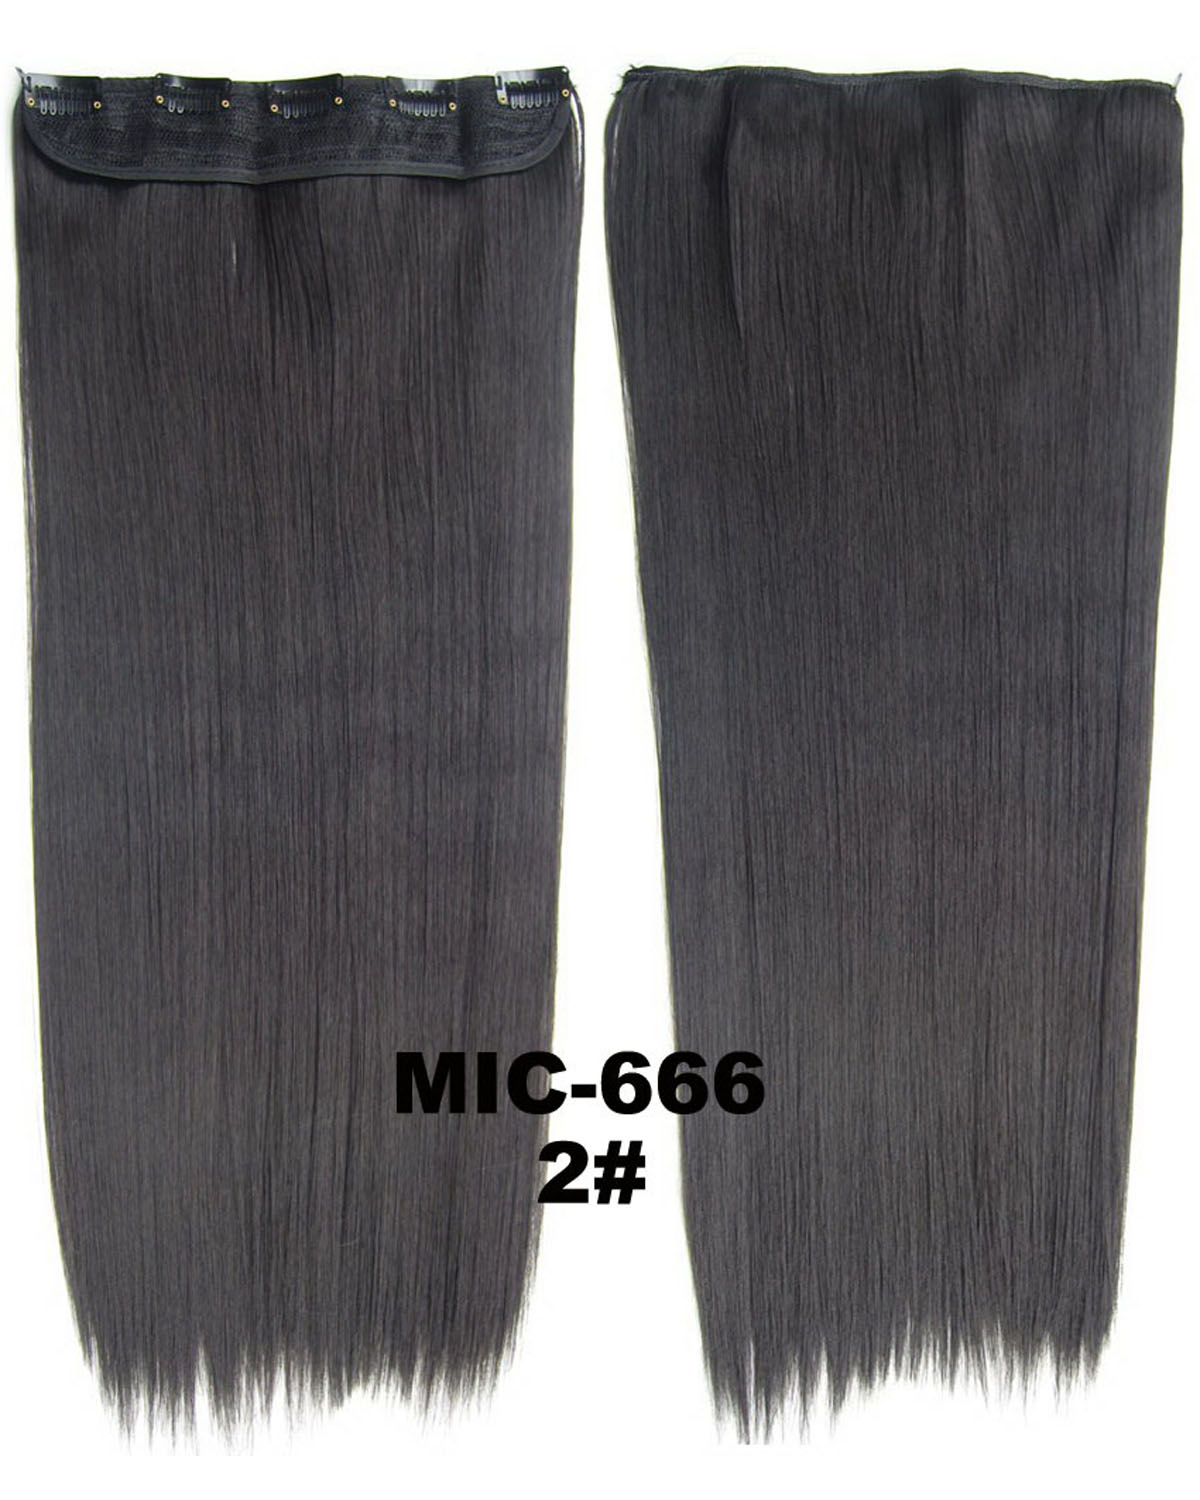 24 inch Wonderful Straight Long One Piece 5 Clips Clip in Synthetic Hair Extension 2# 100g